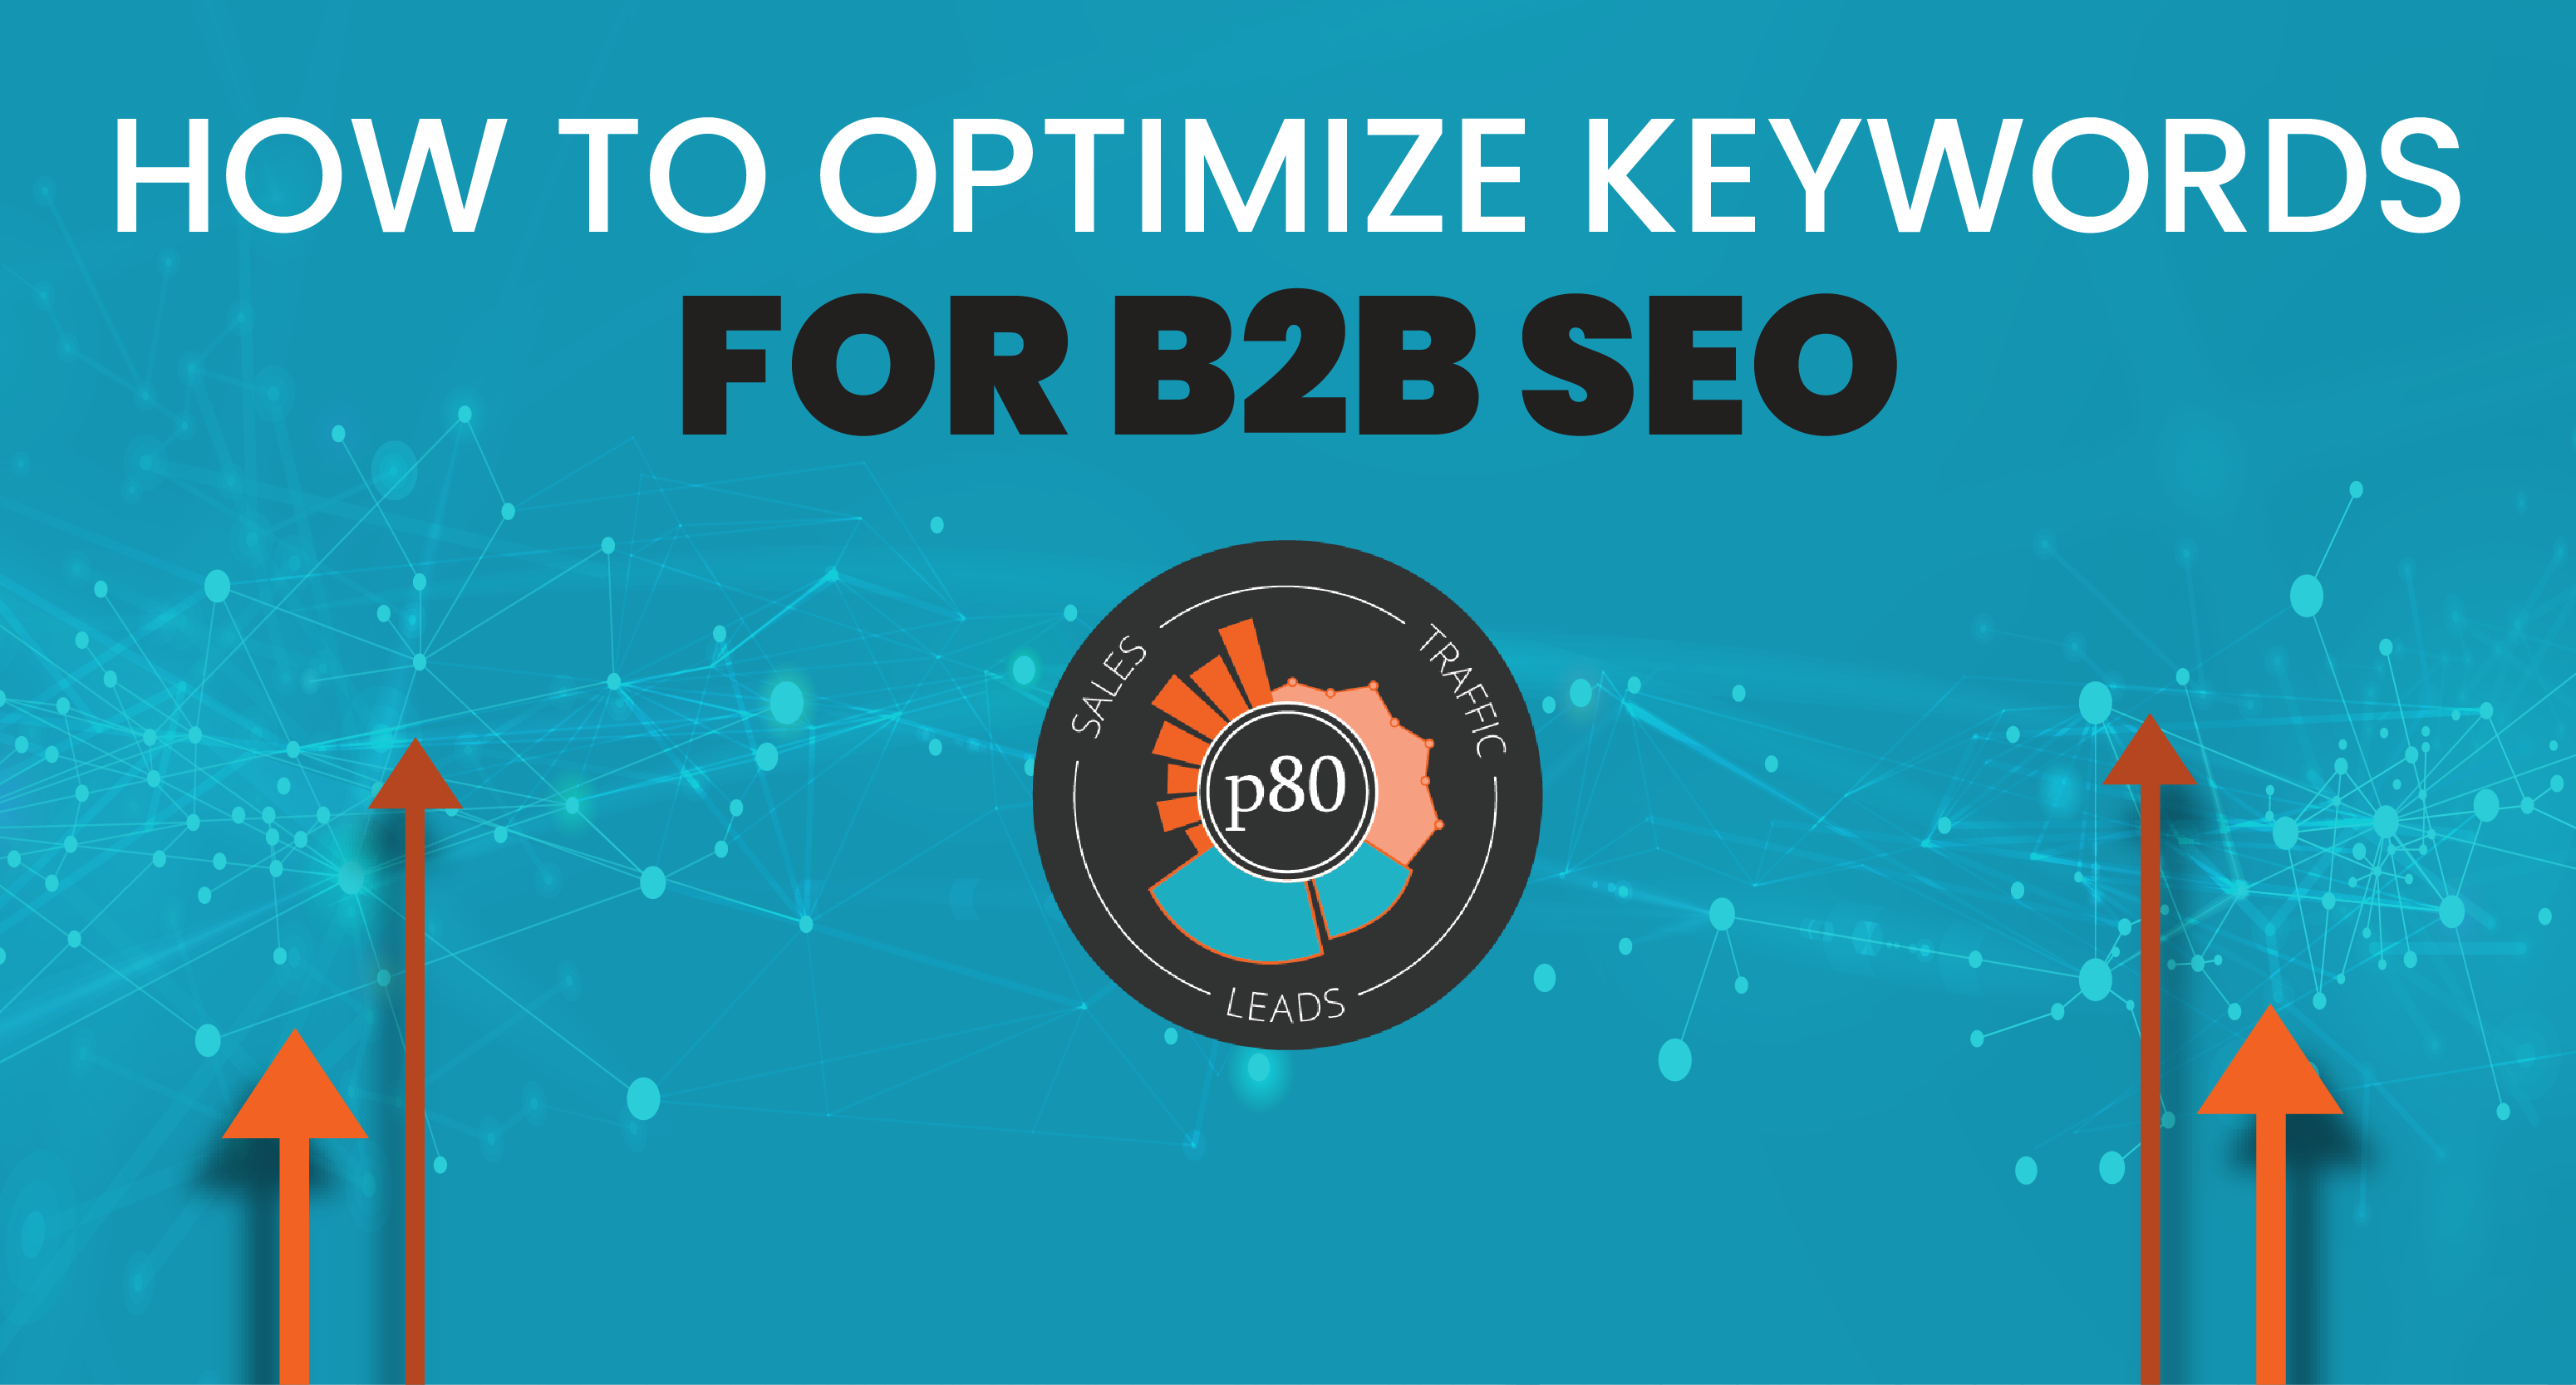 How to Optimize Keywords for B2B SEO & Rank Higher in Search Results